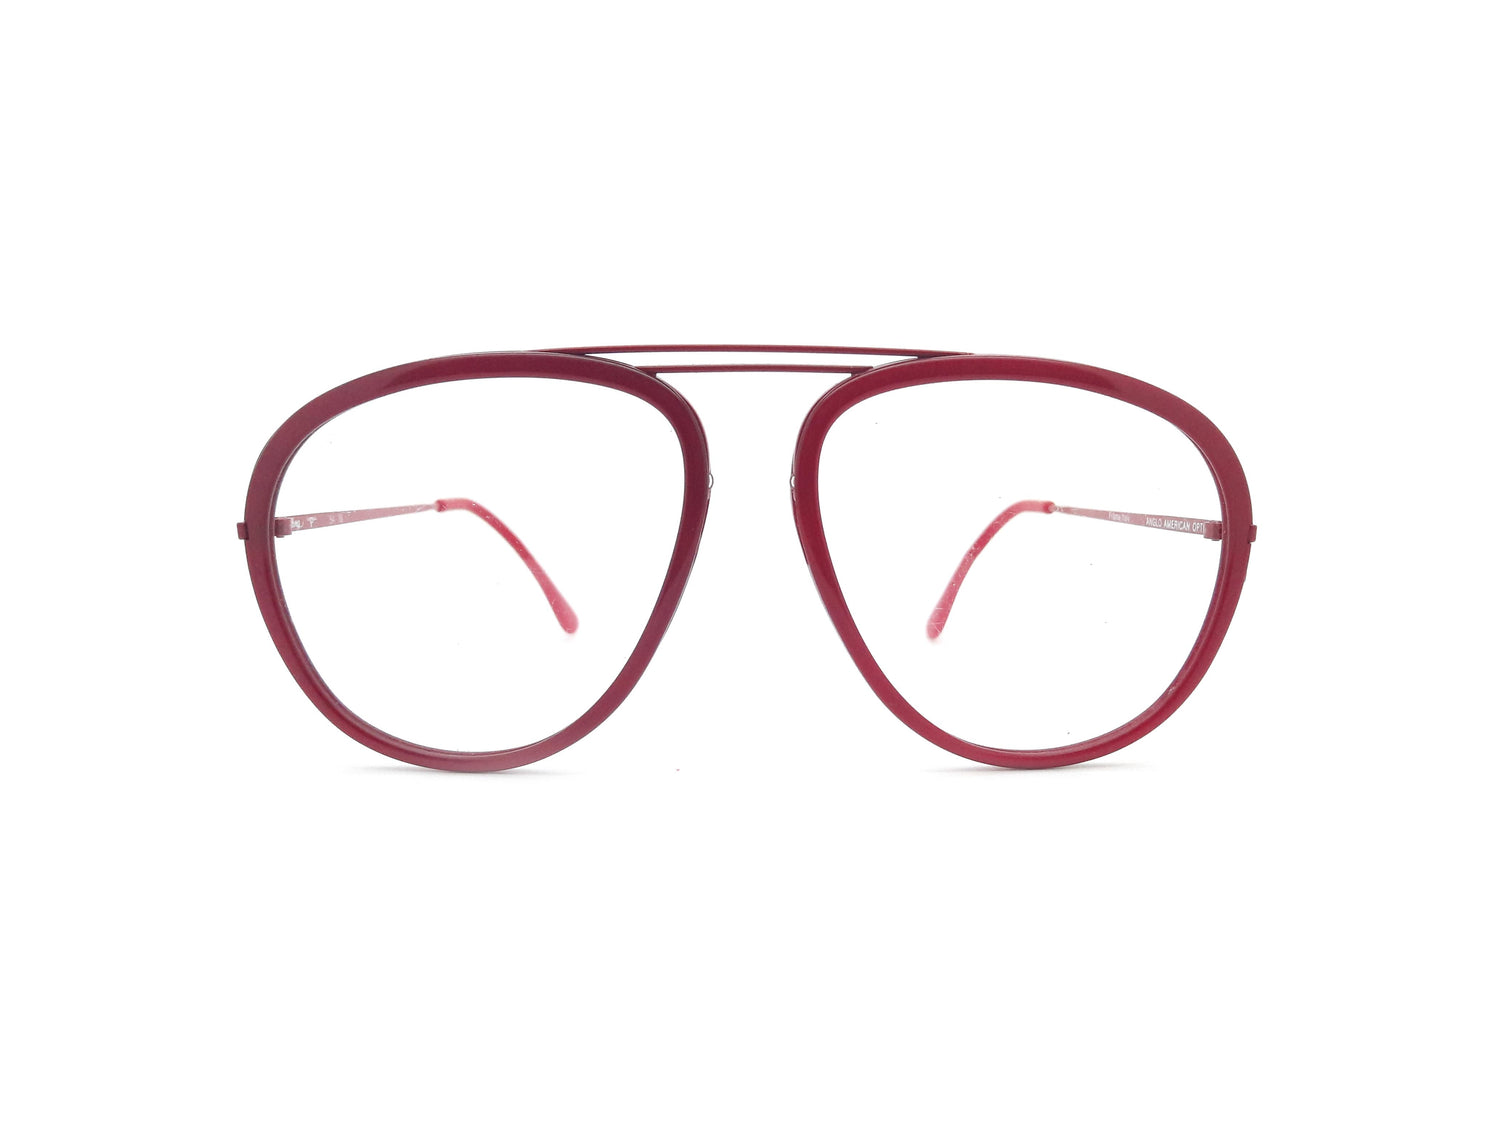 6418614a49 Anglo American Optical Rolling P Red Vintage Aviator Glasses Frame ...